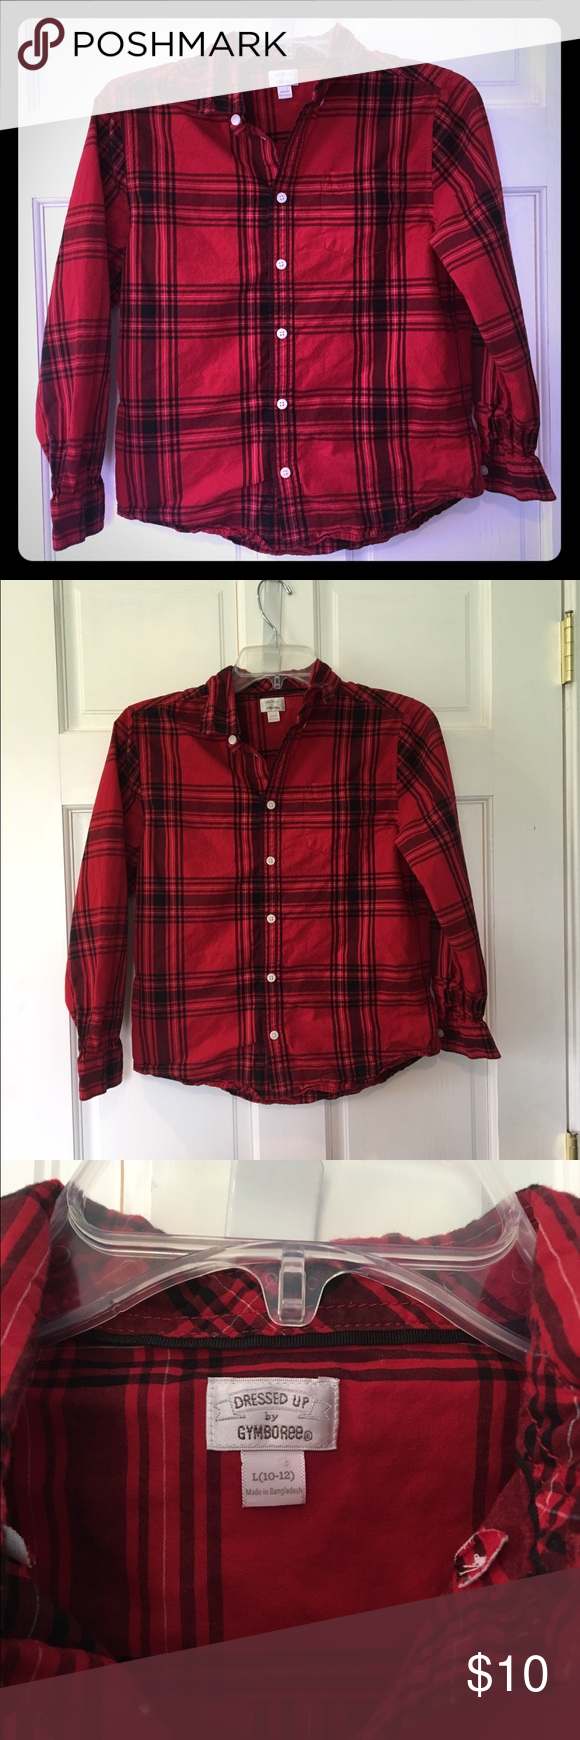 Gymboree Dress Shirt This awesome Gymboree red and black plaid dress shirt has only been worn once. It's in perfect condition! It's marked a 10/12, but I think it runs a bit small. Gymboree Shirts & Tops Button Down Shirts